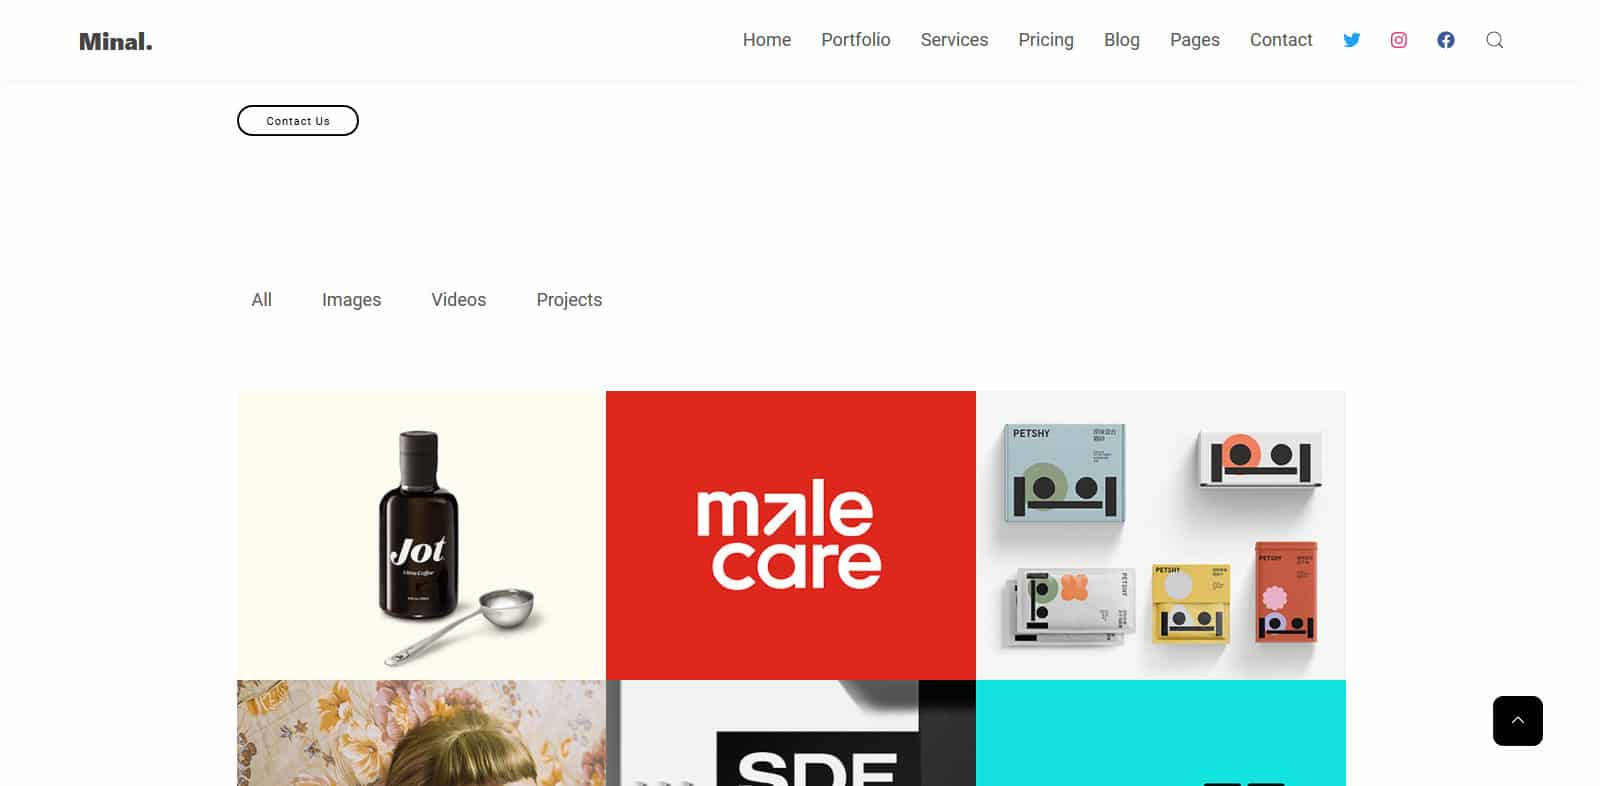 minal-simple-website-template